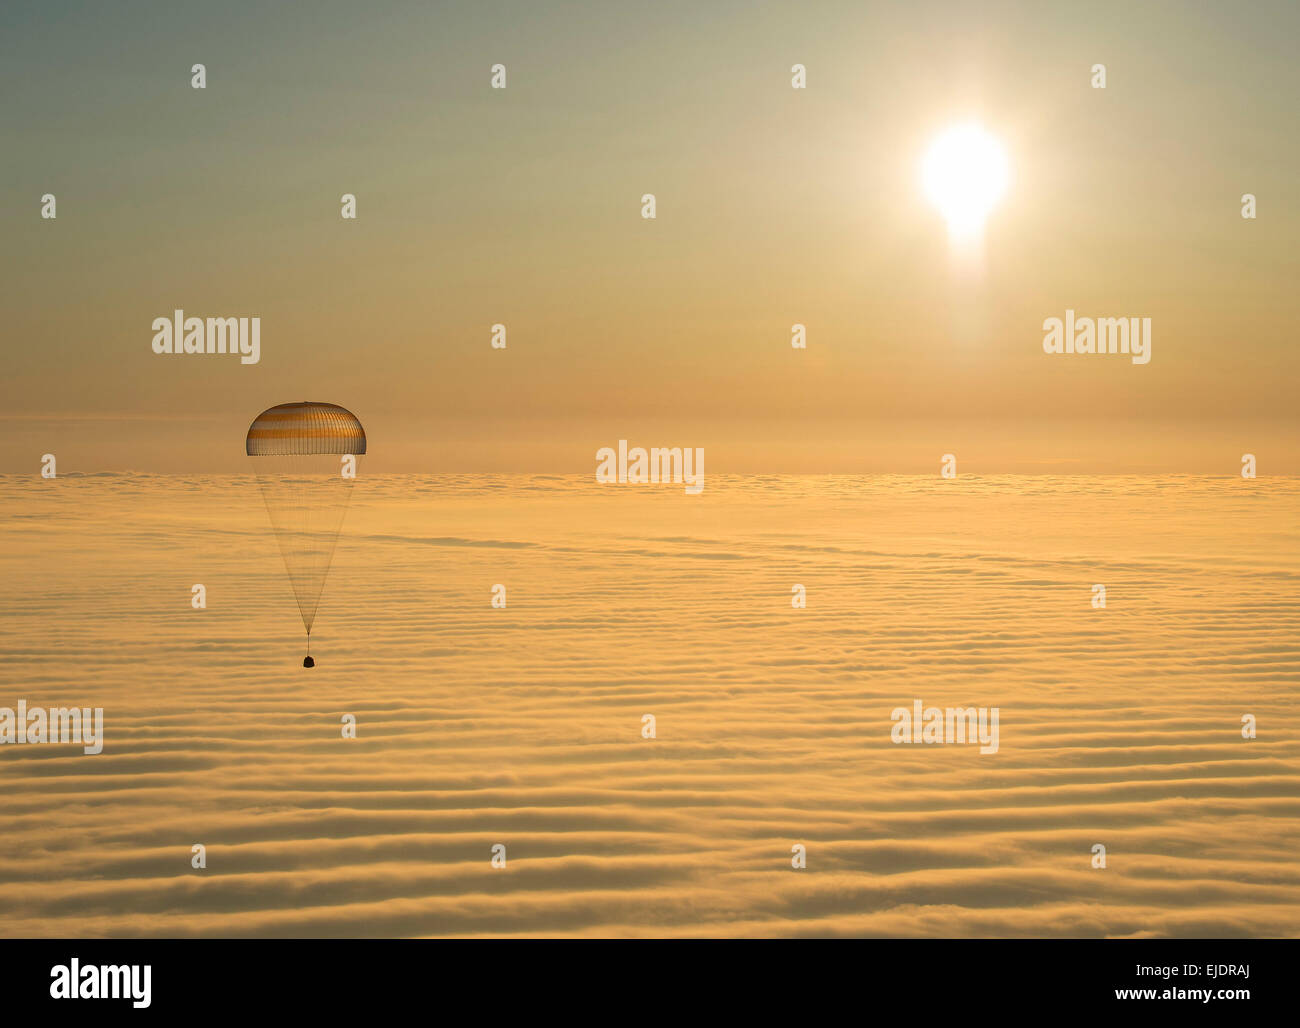 The Soyuz TMA-14M spacecraft is seen as it lands with Expedition 42 commander Barry Wilmore of NASA, Alexander Samokutyaev - Stock Image